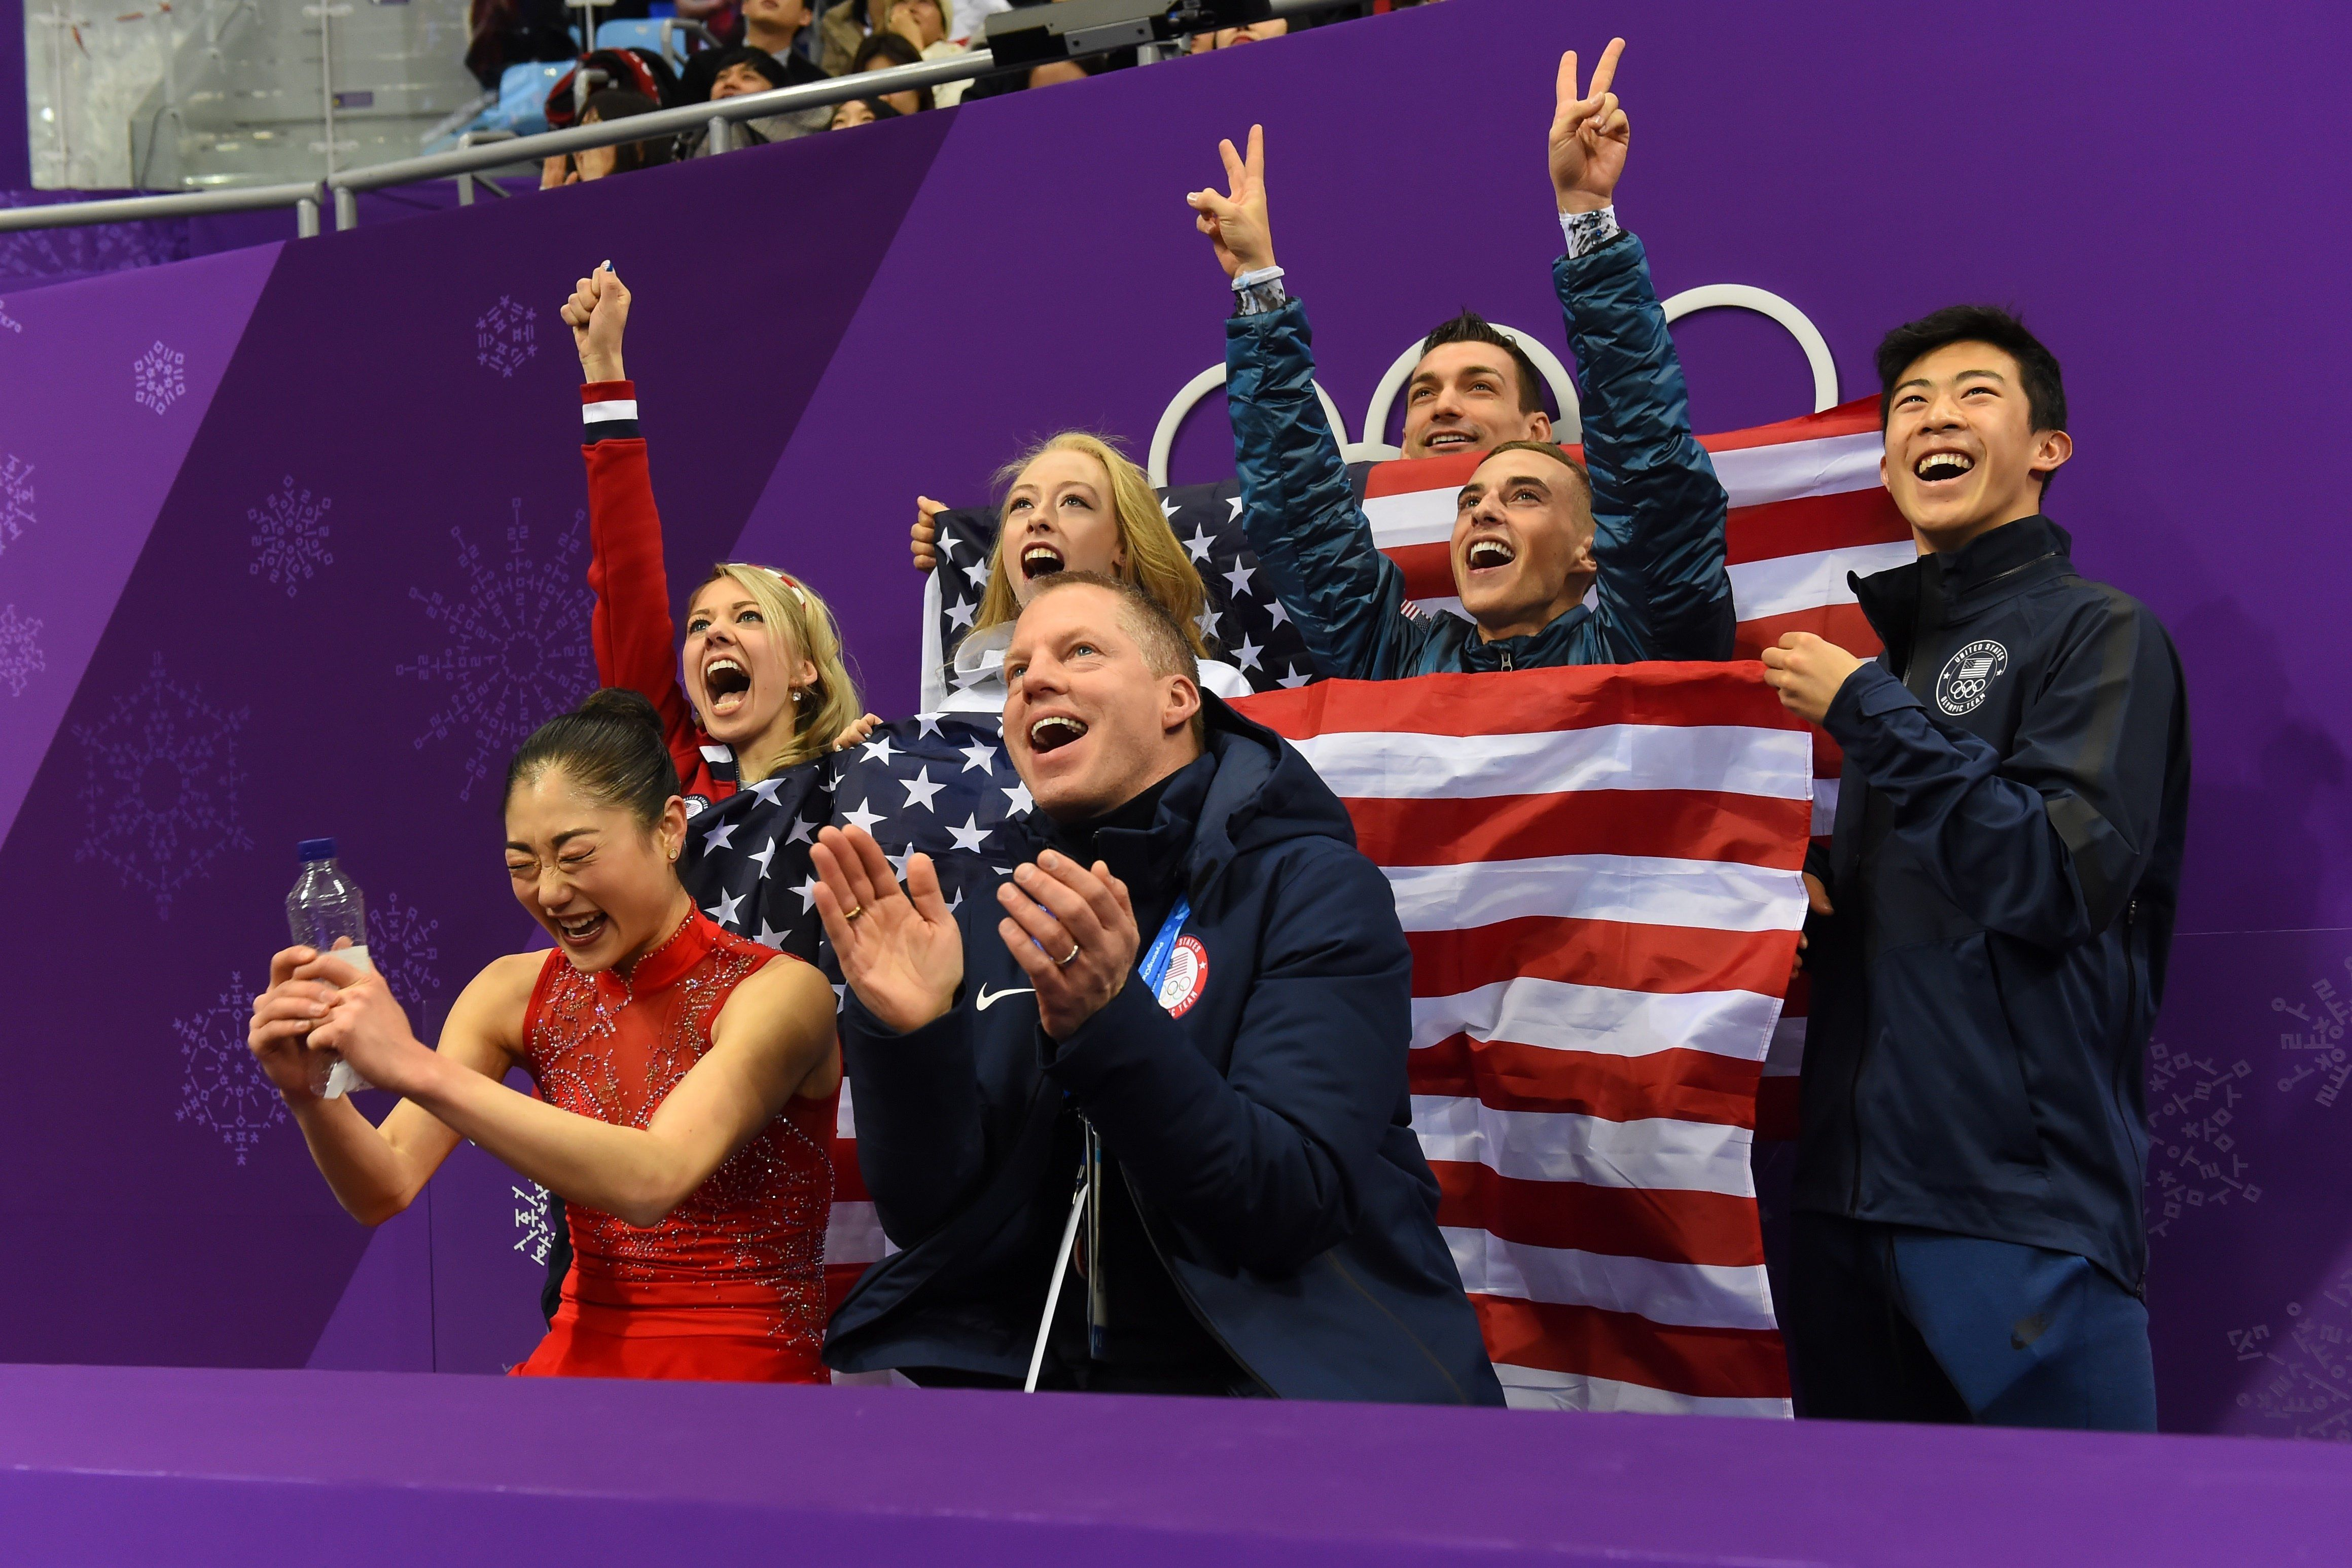 USA's Mirai Nagasu (front L) reacts after competing in the figure skating team event women's single skating free skating during the Pyeongchang 2018 Winter Olympic Games at the Gangneung Ice Arena in Gangneung on February 12, 2018. / AFP PHOTO / Roberto SCHMIDT        (Photo credit should read ROBERTO SCHMIDT/AFP/Getty Images)